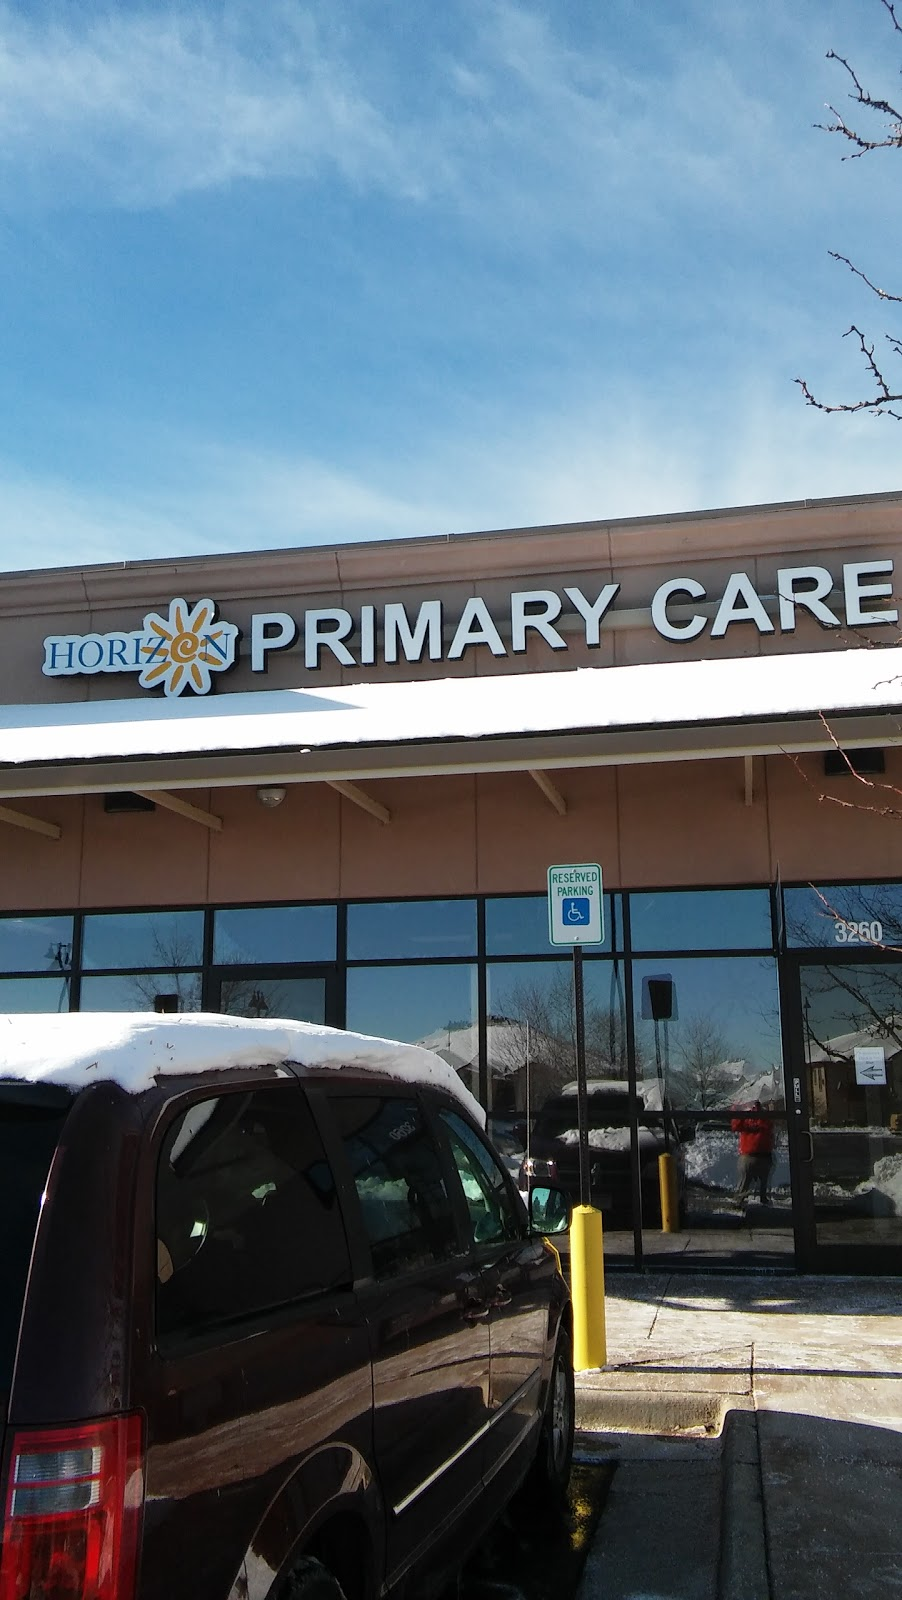 Horizon Primary Care - doctor  | Photo 1 of 1 | Address: 3260 E 104th Ave, Thornton, CO 80233, USA | Phone: (720) 929-8300